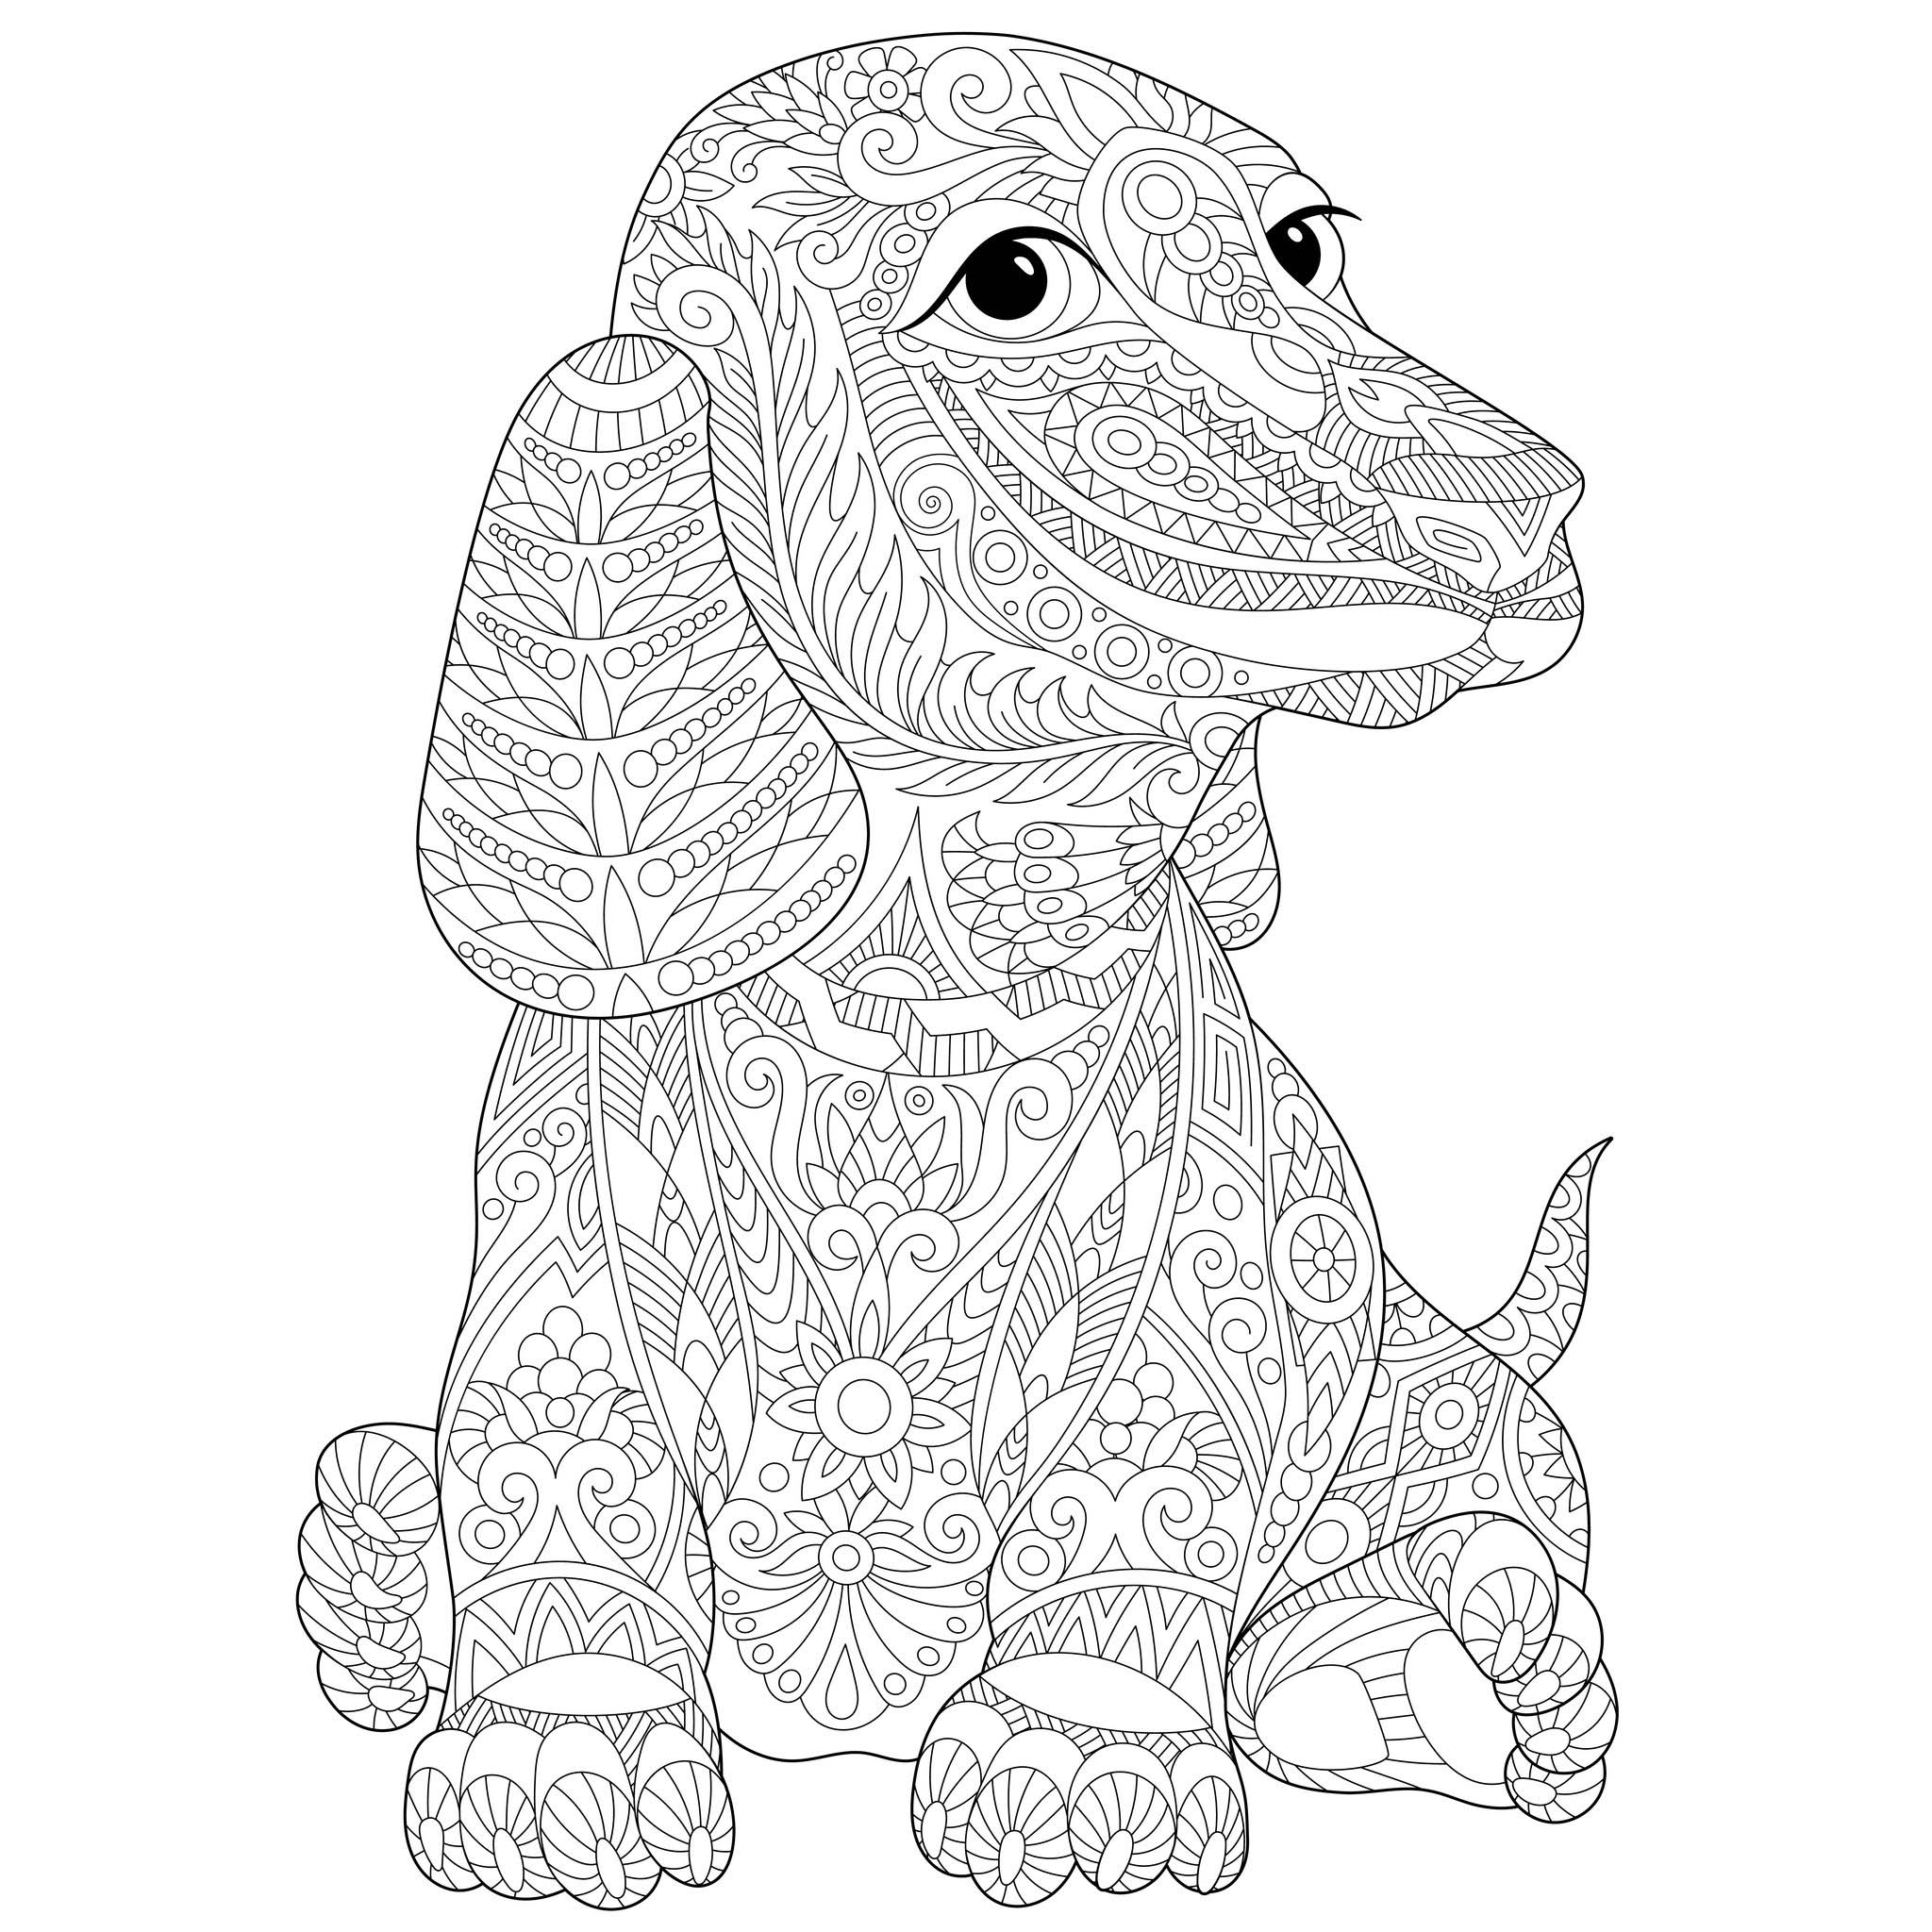 puppy pictures for coloring dog to color for kids dogs kids coloring pages pictures coloring puppy for